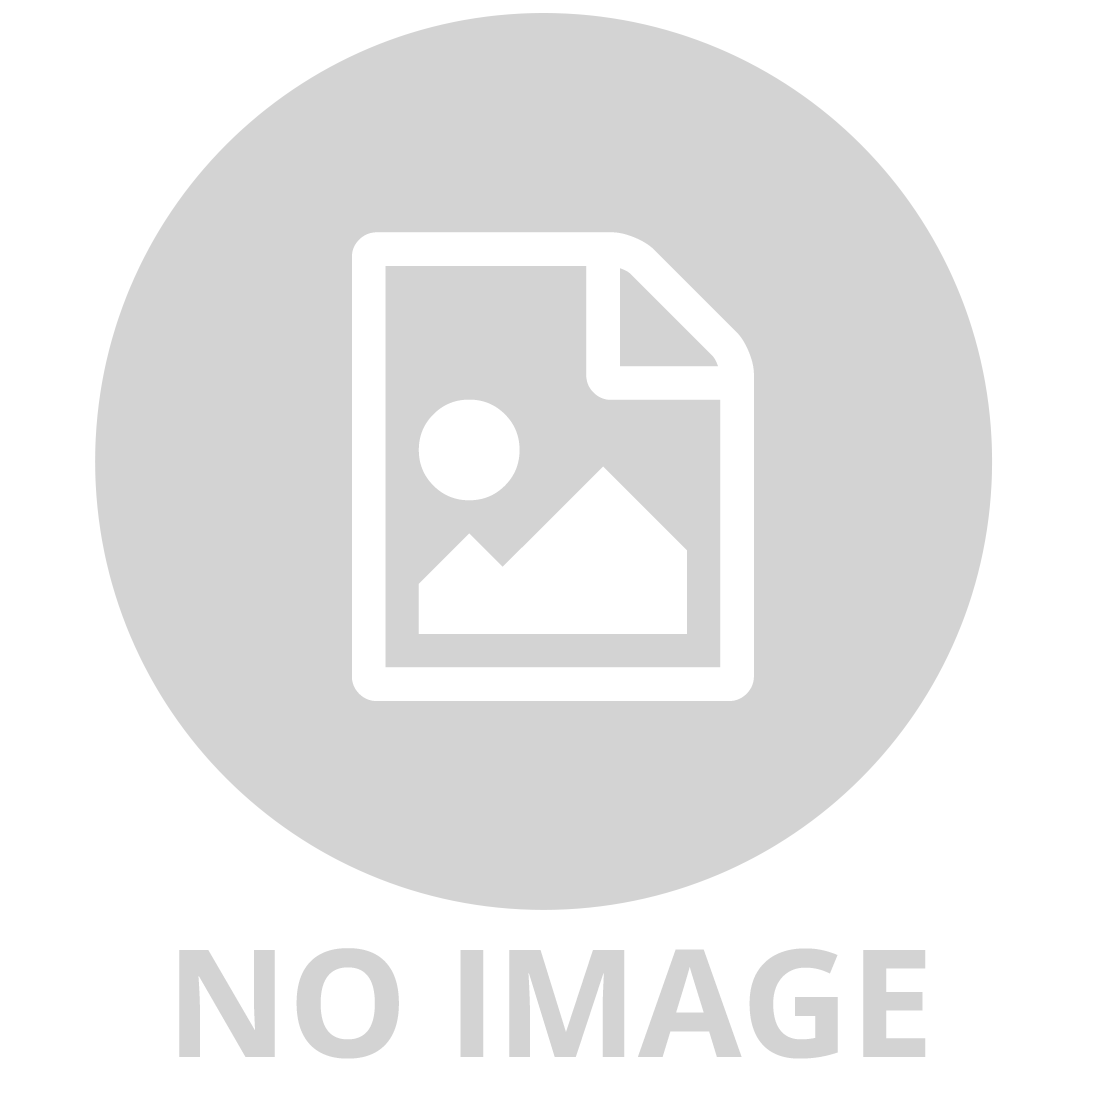 BABY'S FIRST CONSOLE GAME CONTROLLER